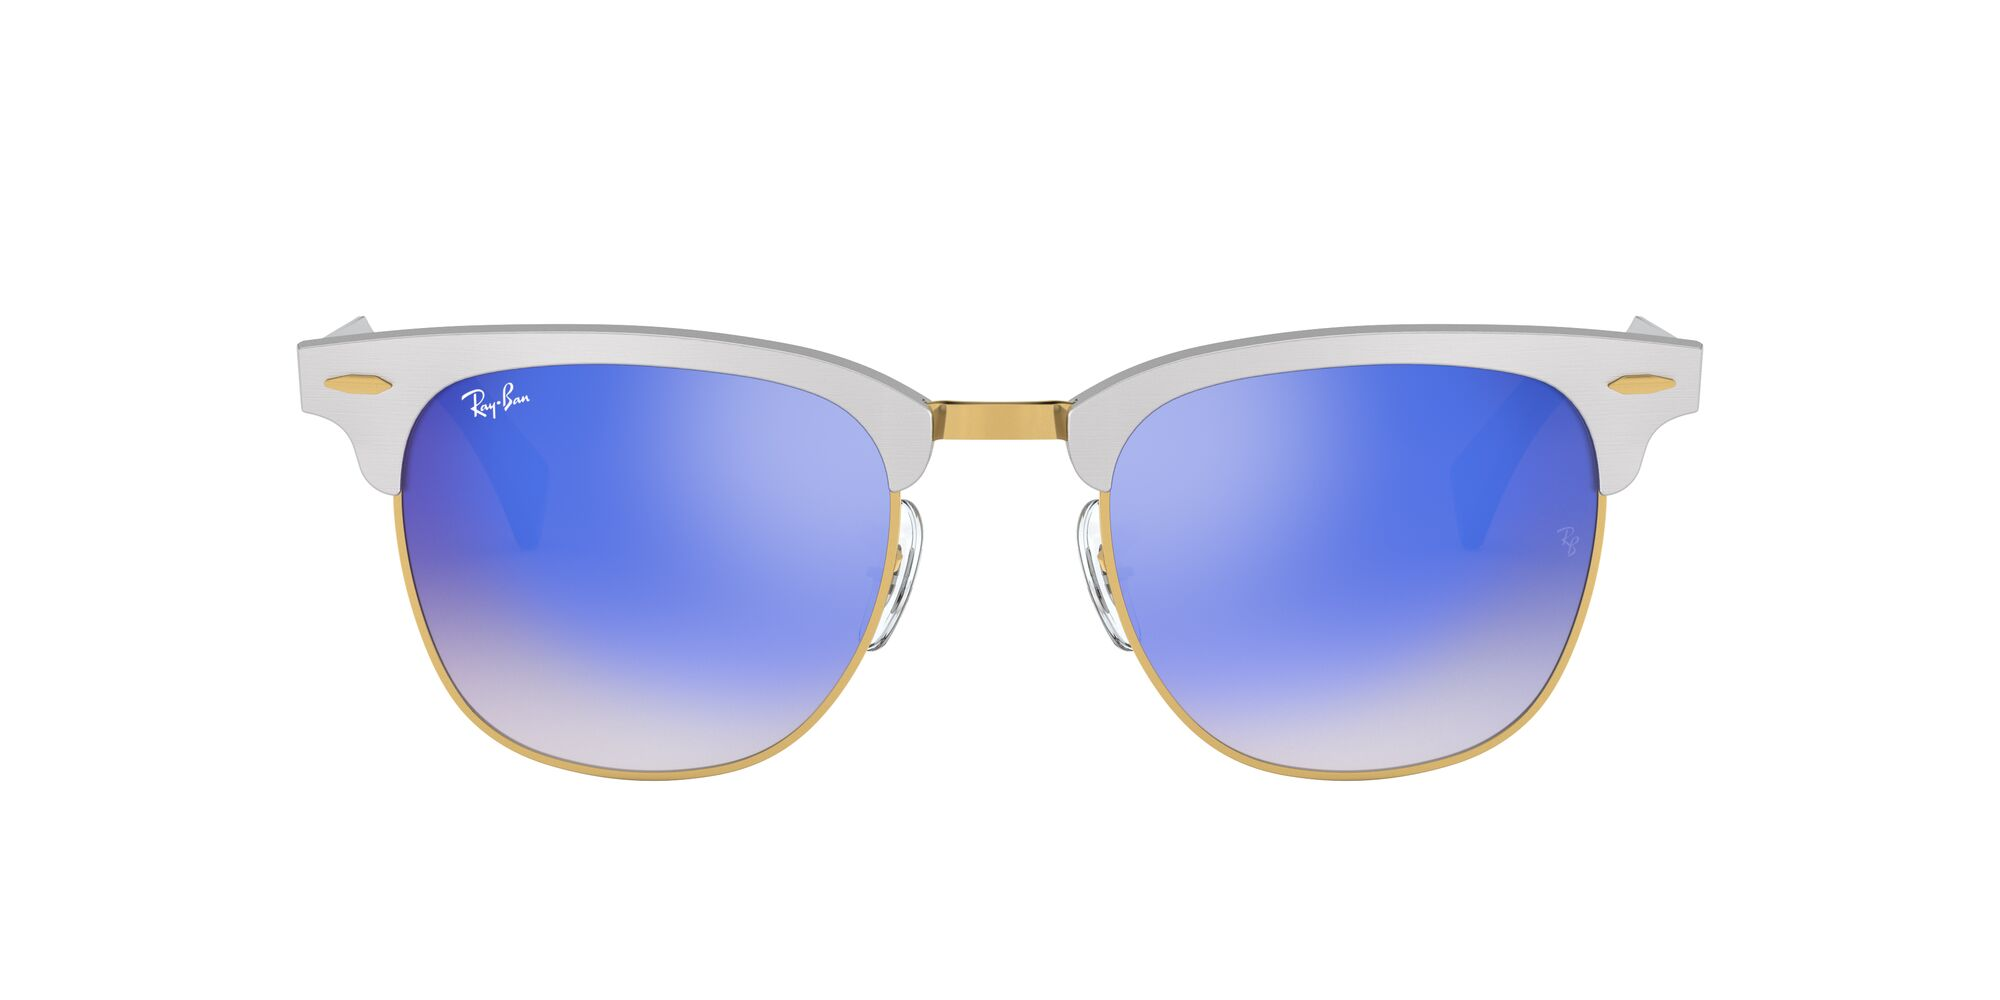 Front Ray-Ban Ray-Ban 0RB3507 137/7Q 51/21 Zilver/Blauw